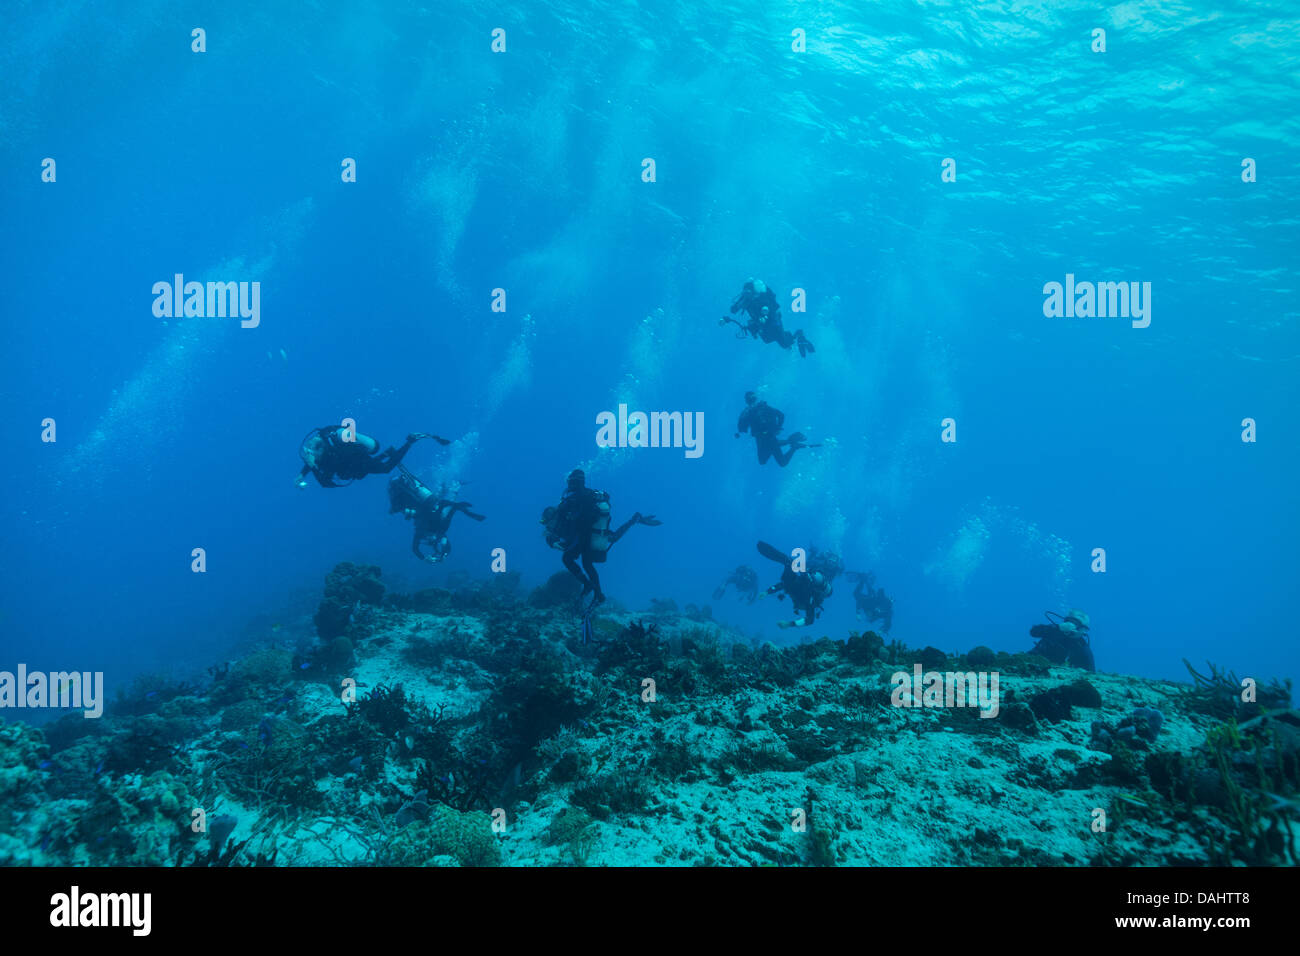 Eight scuba divers diving off the coast of Cozumel, Mexico. - Stock Image